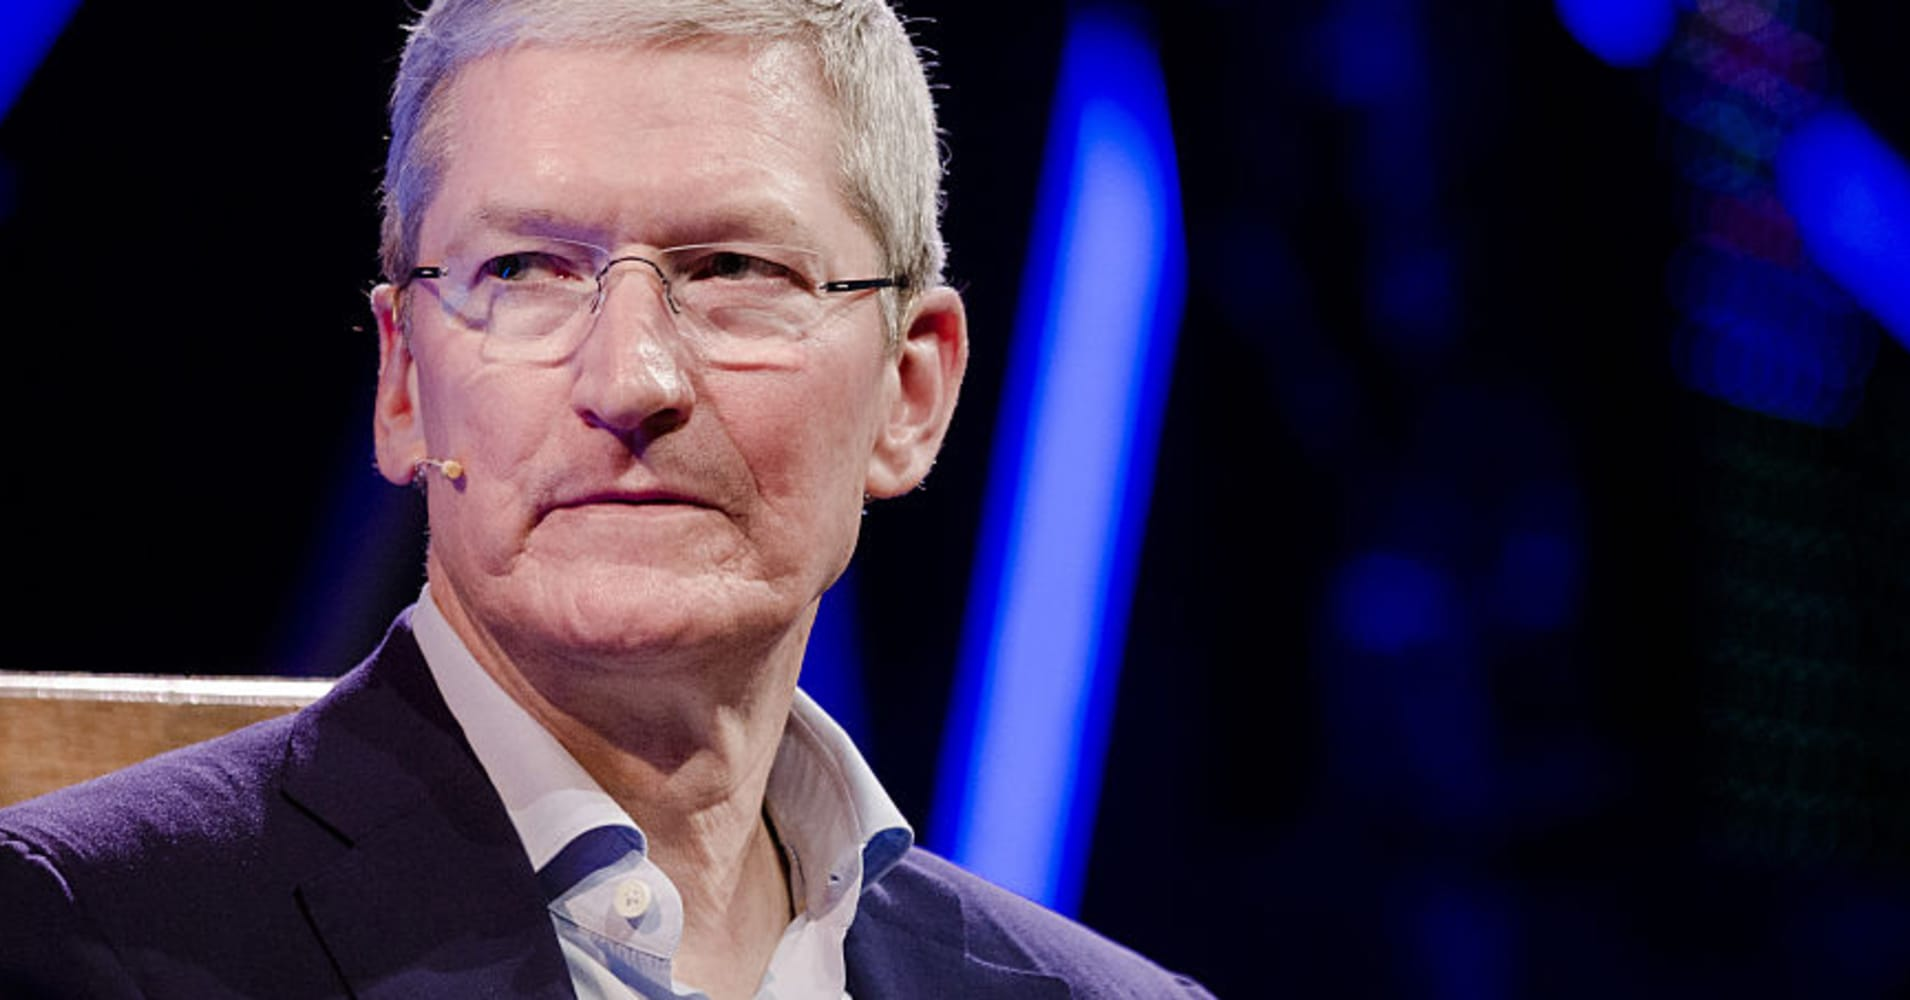 Apple needs to buy a production house like A24, Lionsgate, or Sony Pictures: Analyst